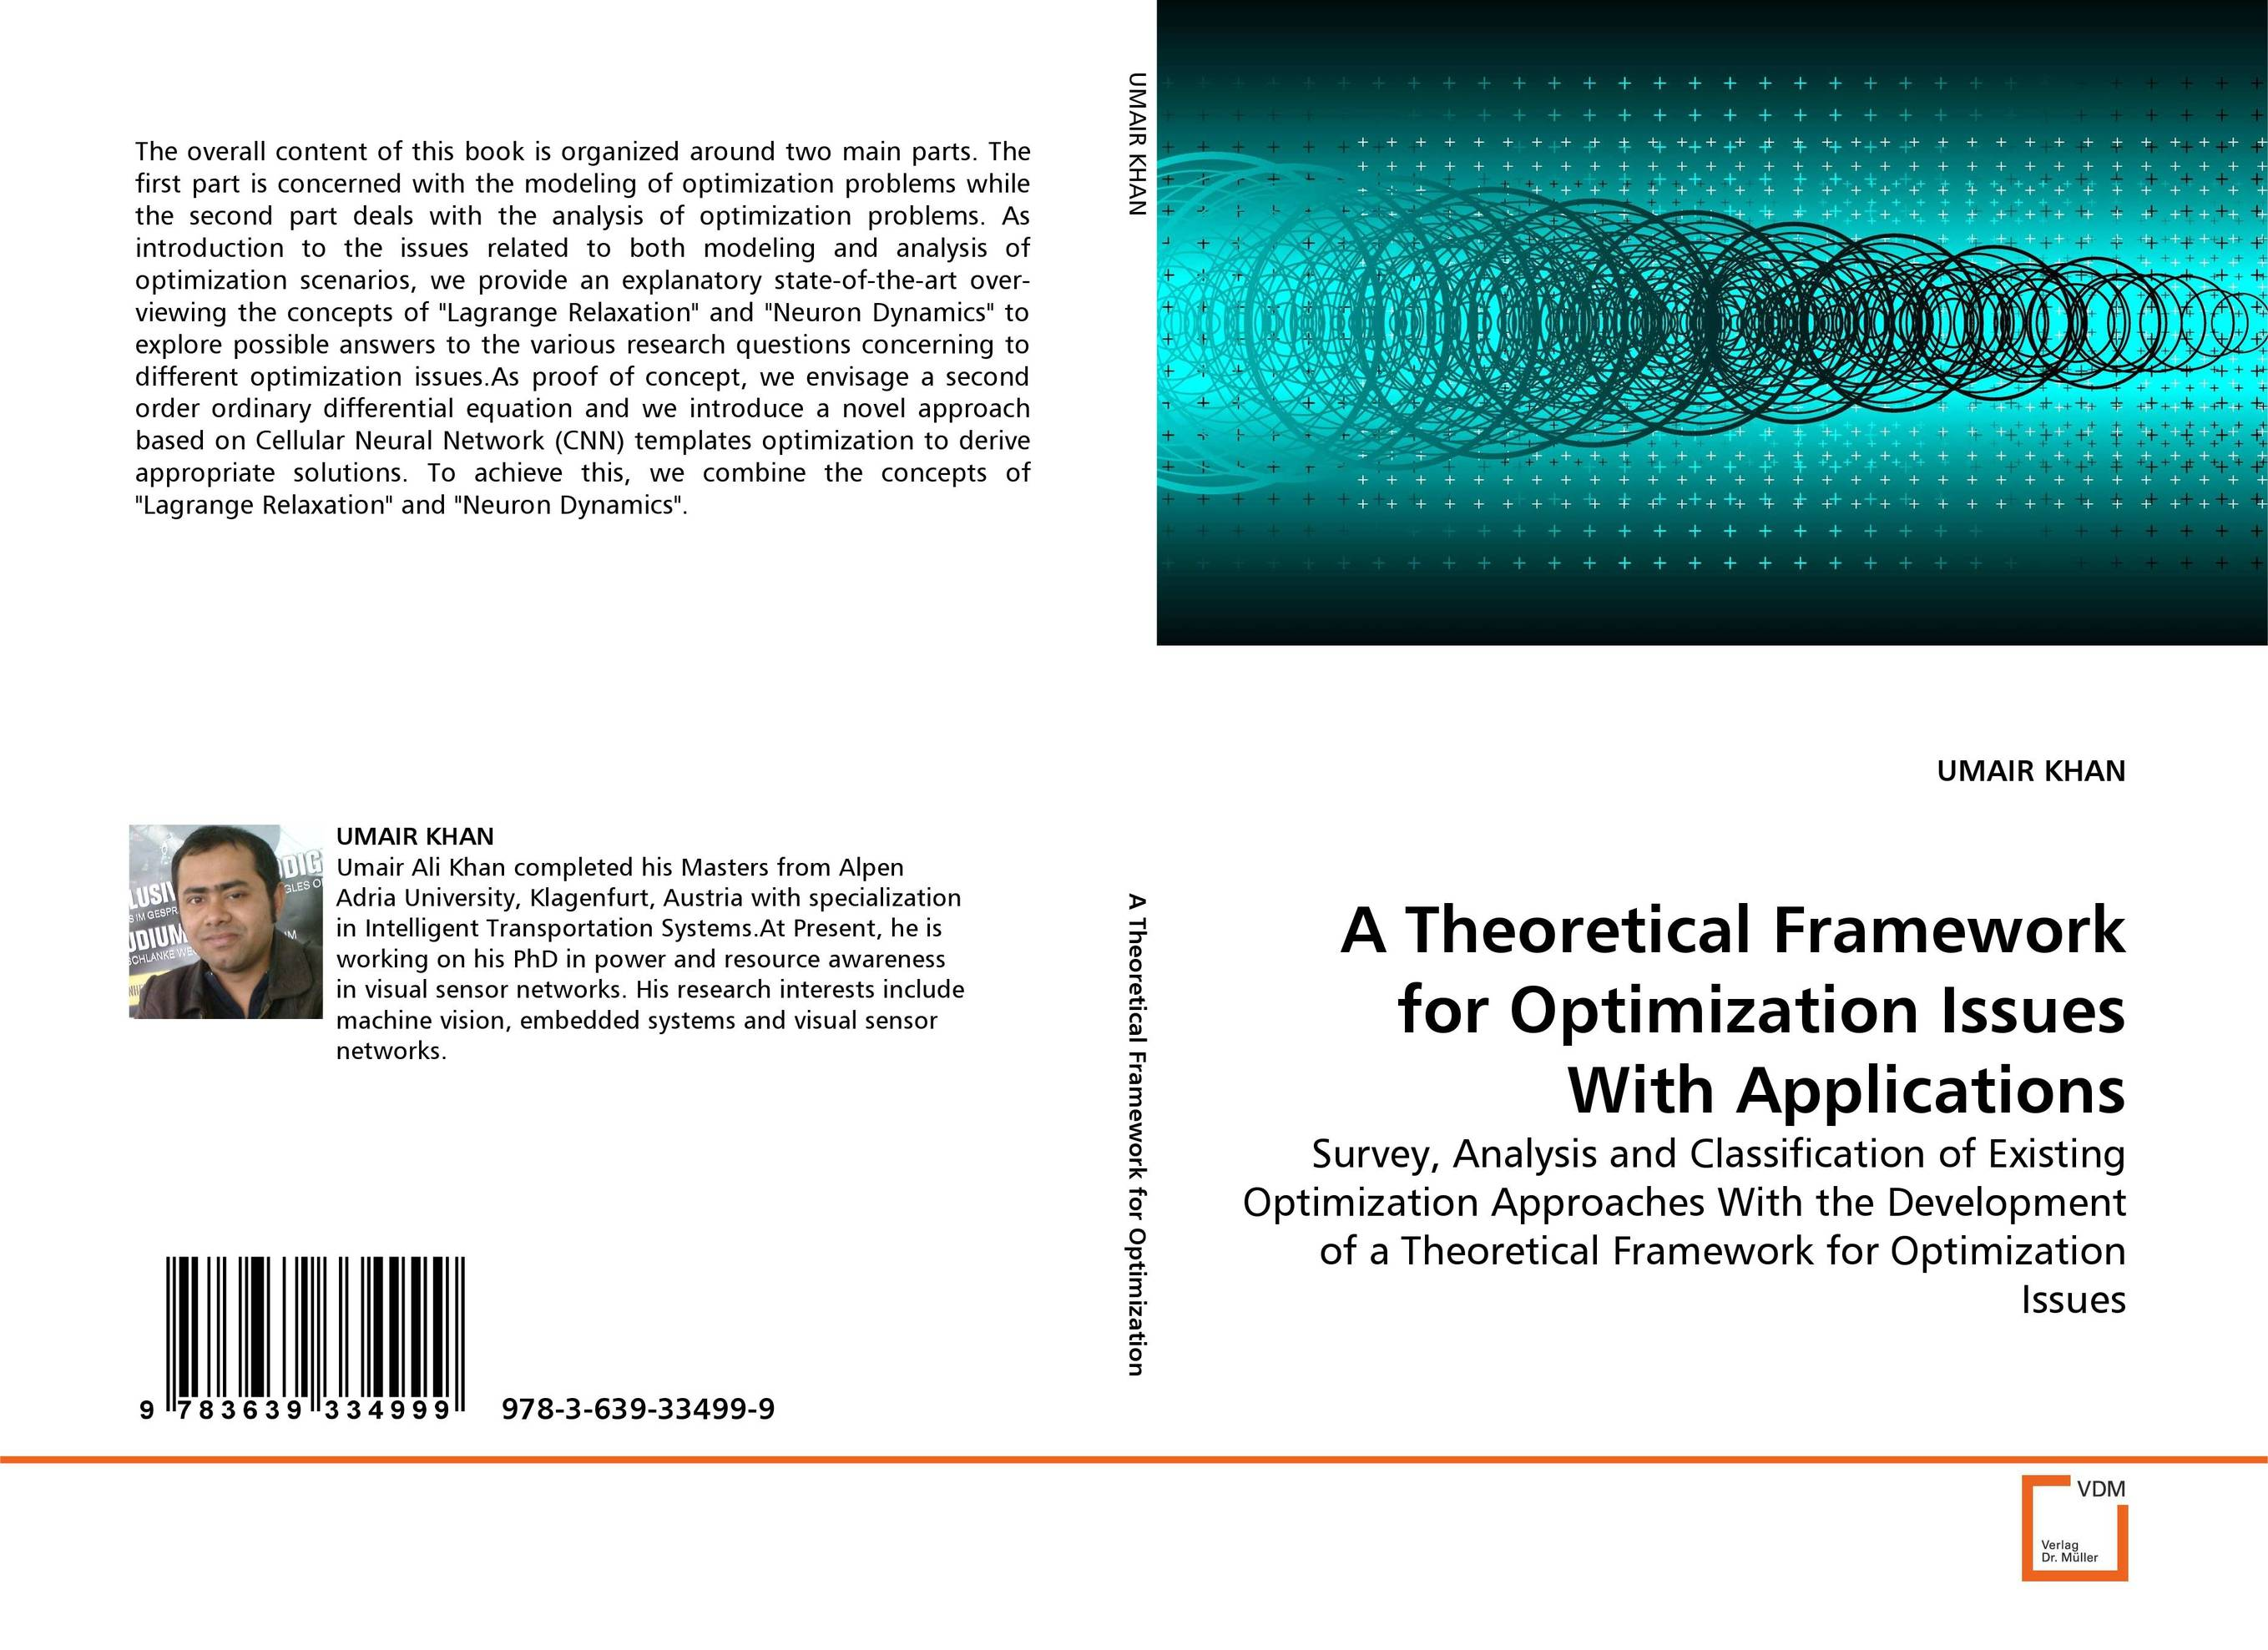 A Theoretical Framework for Optimization Issues With Applications optimization of hydro generation scheduling